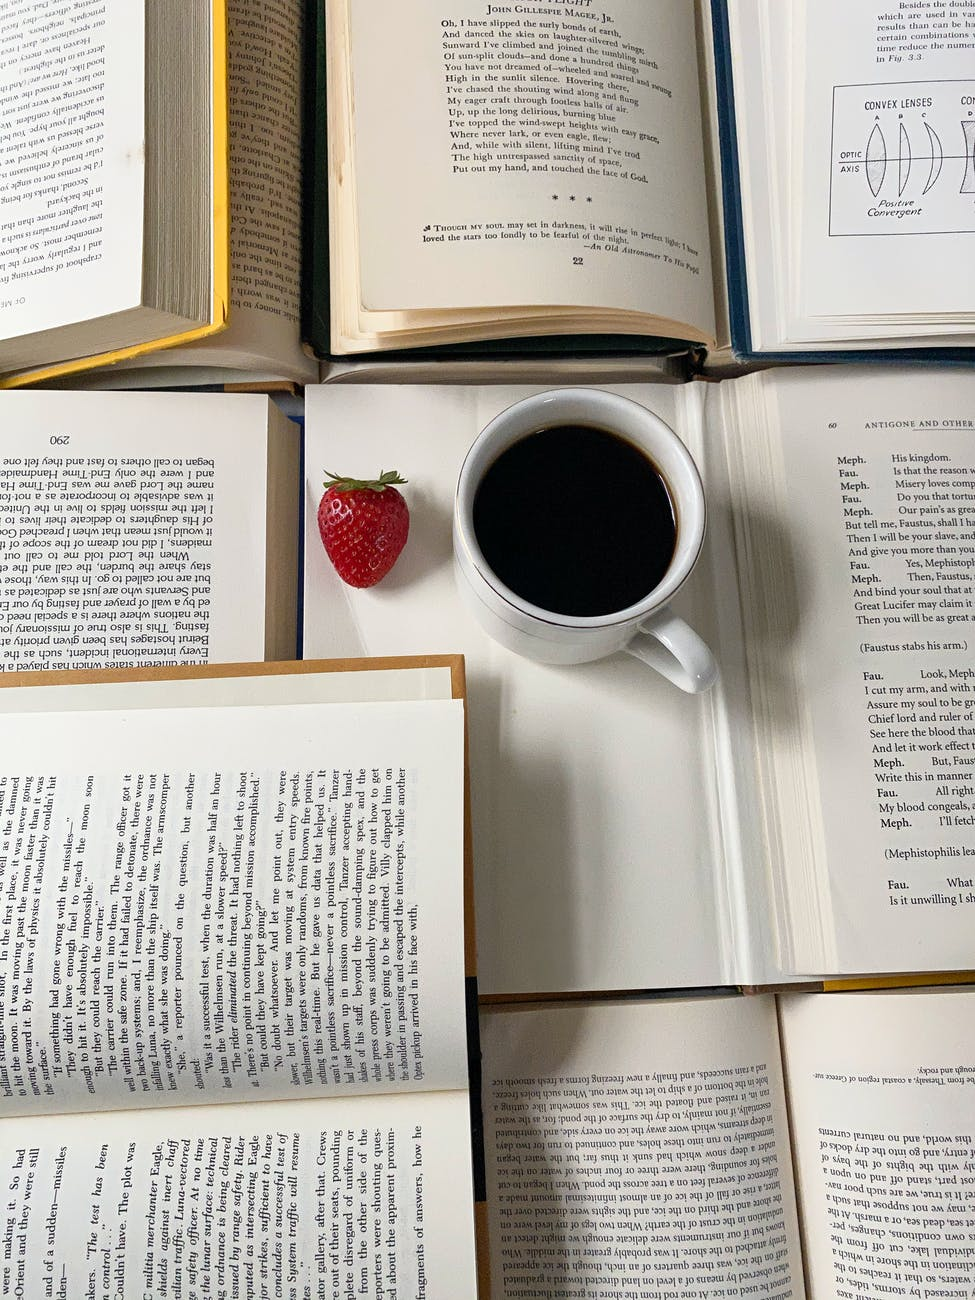 mug with coffee and strawberry on opened books